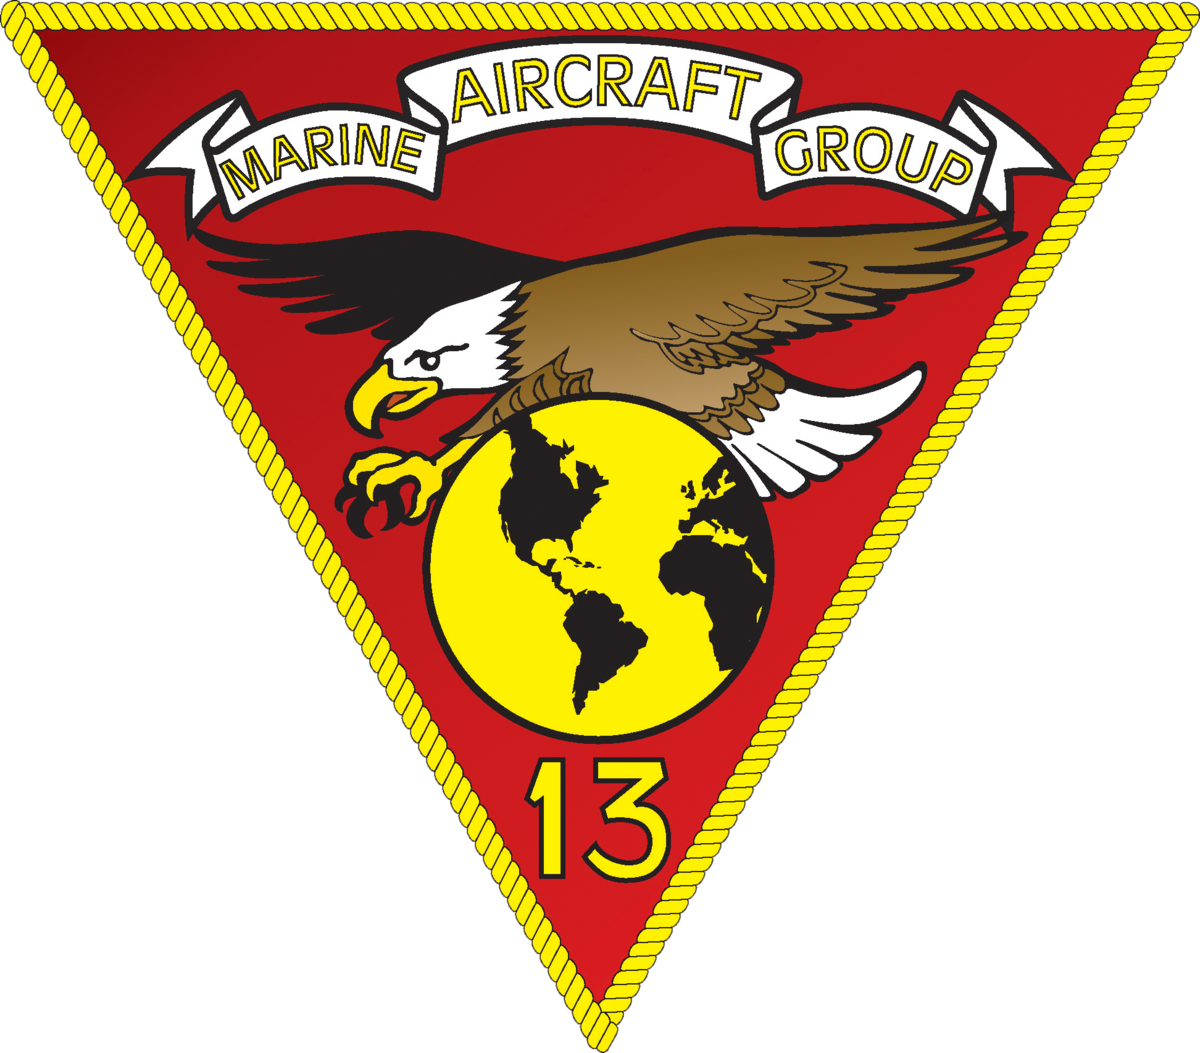 marine aircraft group 13 wikipedia